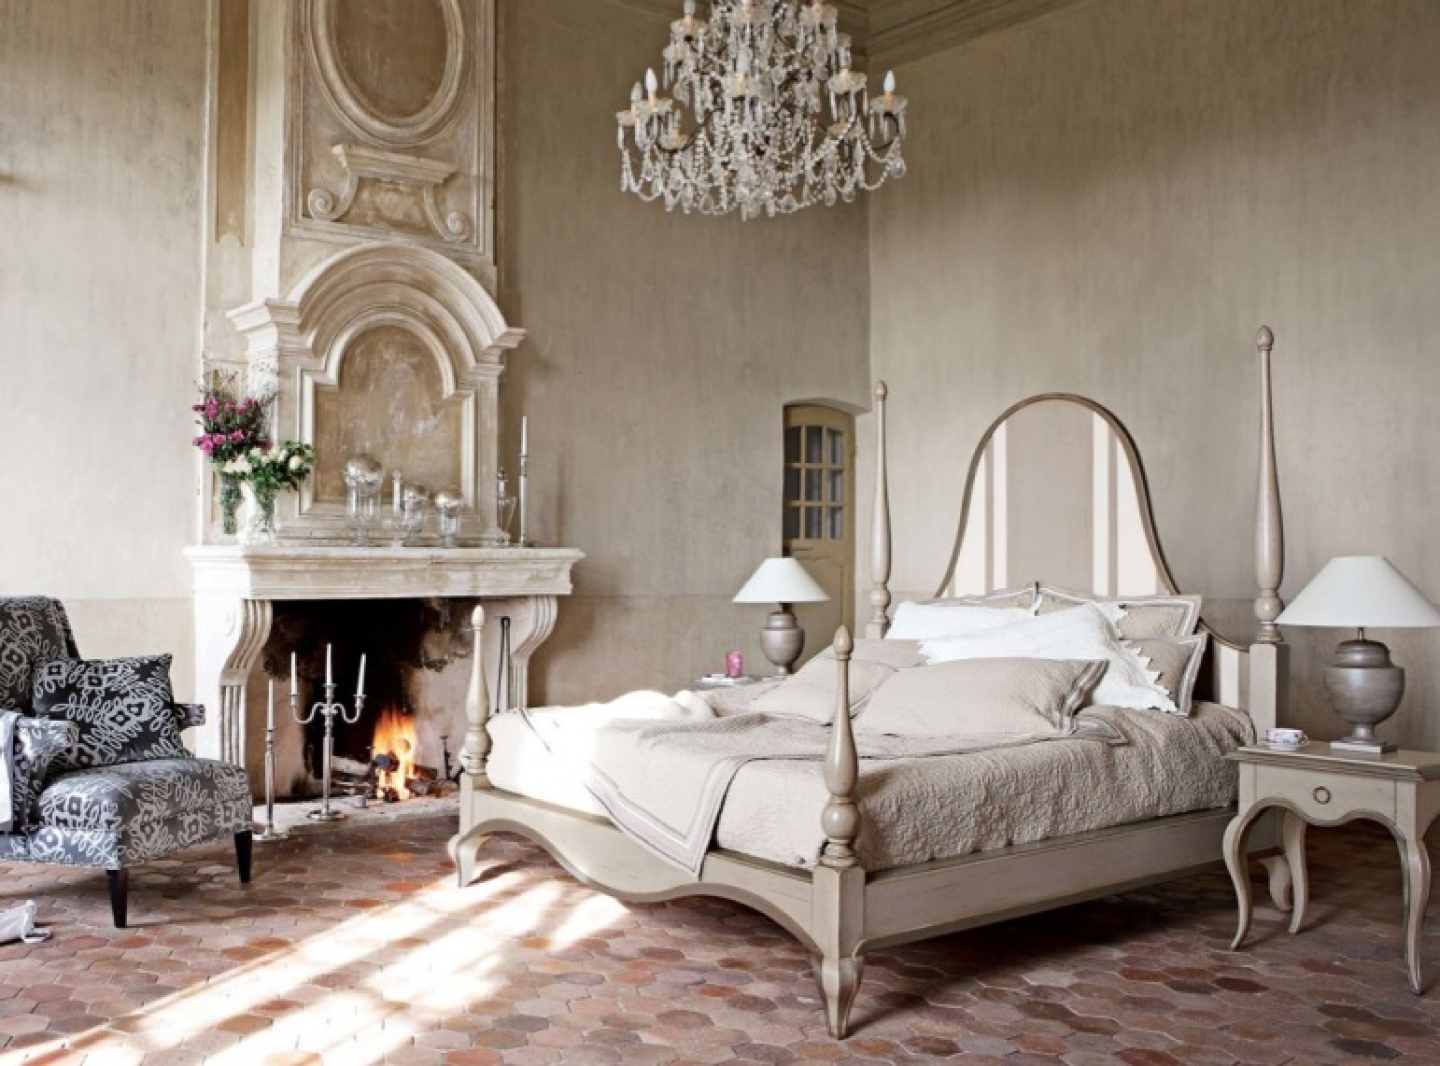 picture from the gallery Bedroom Wallpaper Ideas More Ideas 1440x1066